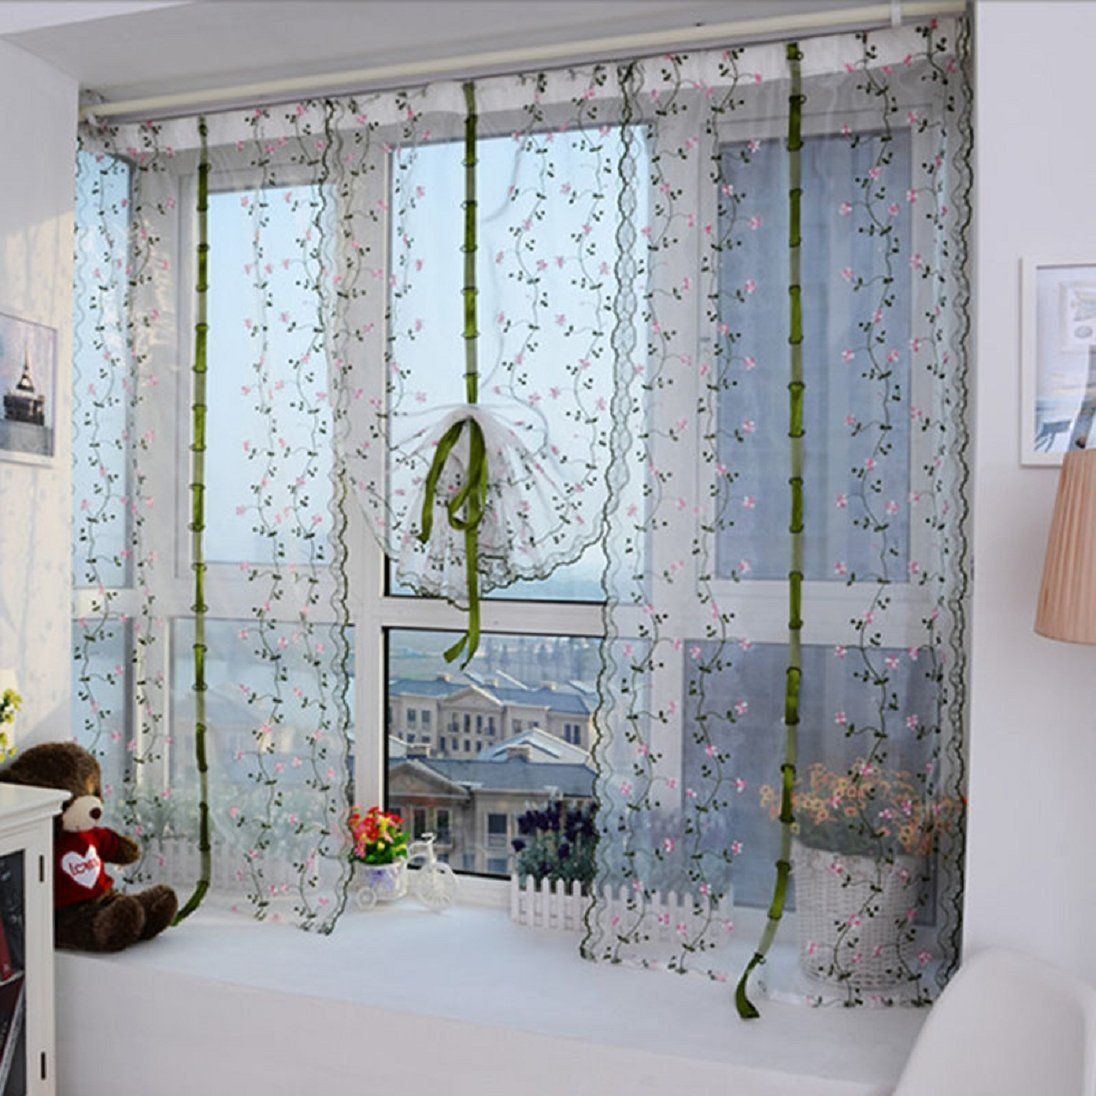 Amazon.com : AutumnFall® 1 PC Flower color Tulle Door Window Curtain ...